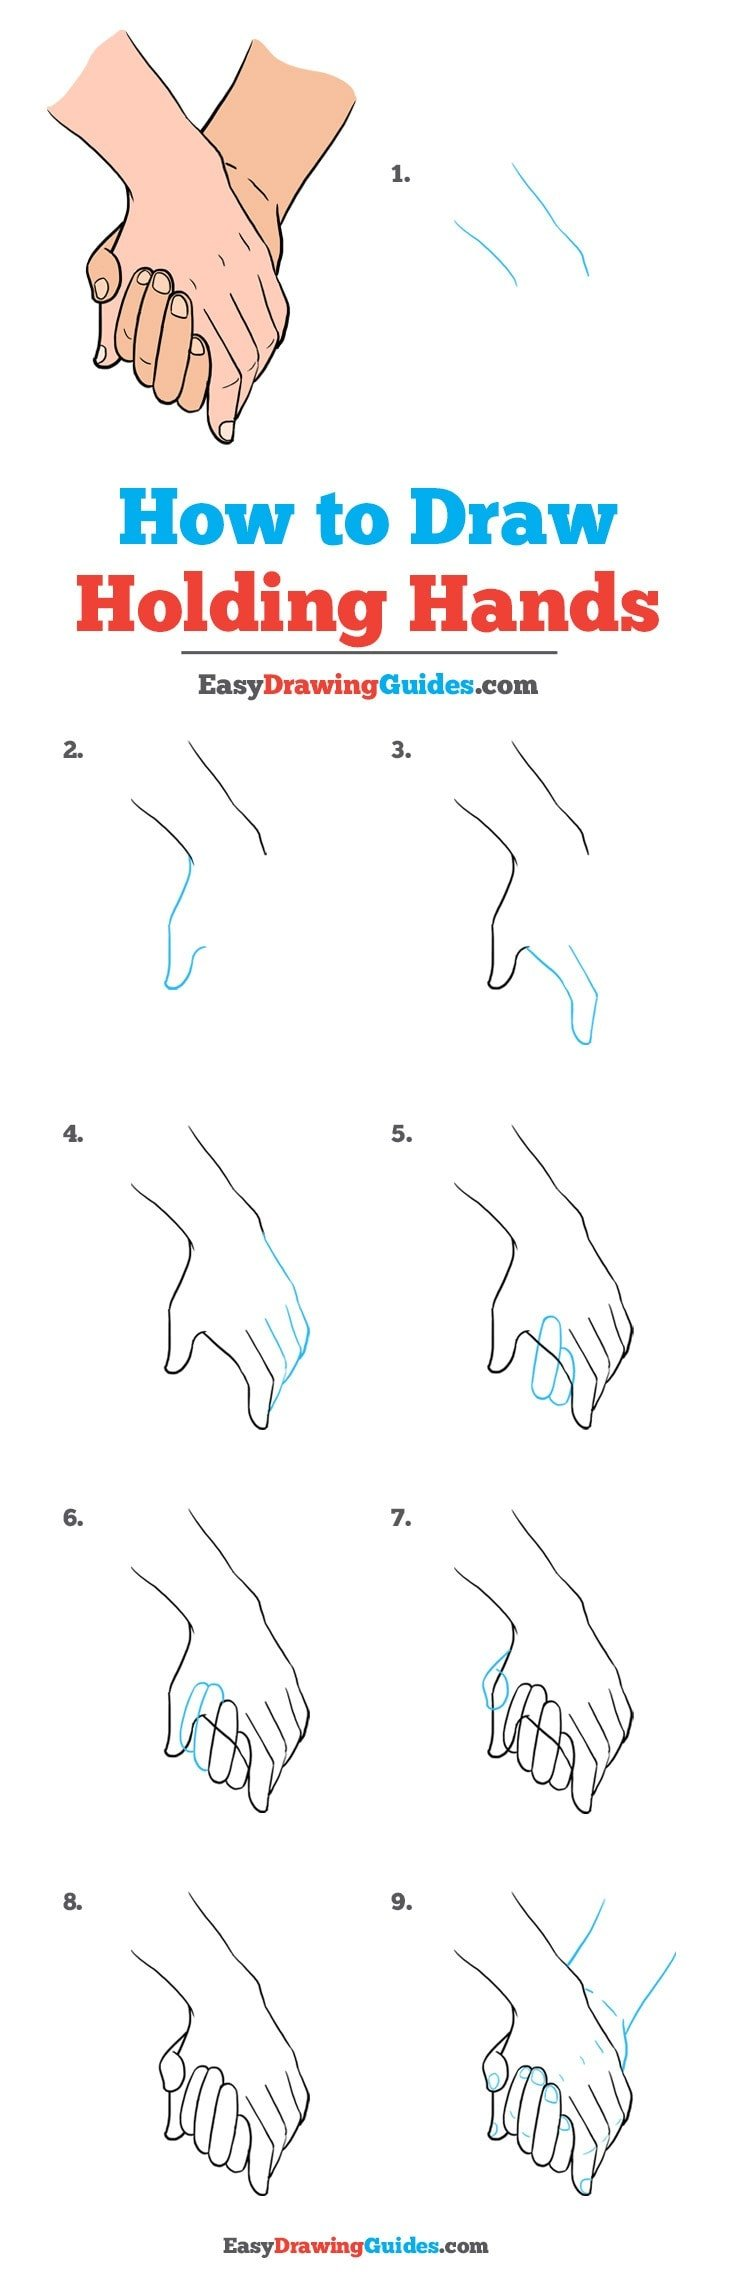 How to Draw Holding Hands: Step by Step Tutorial